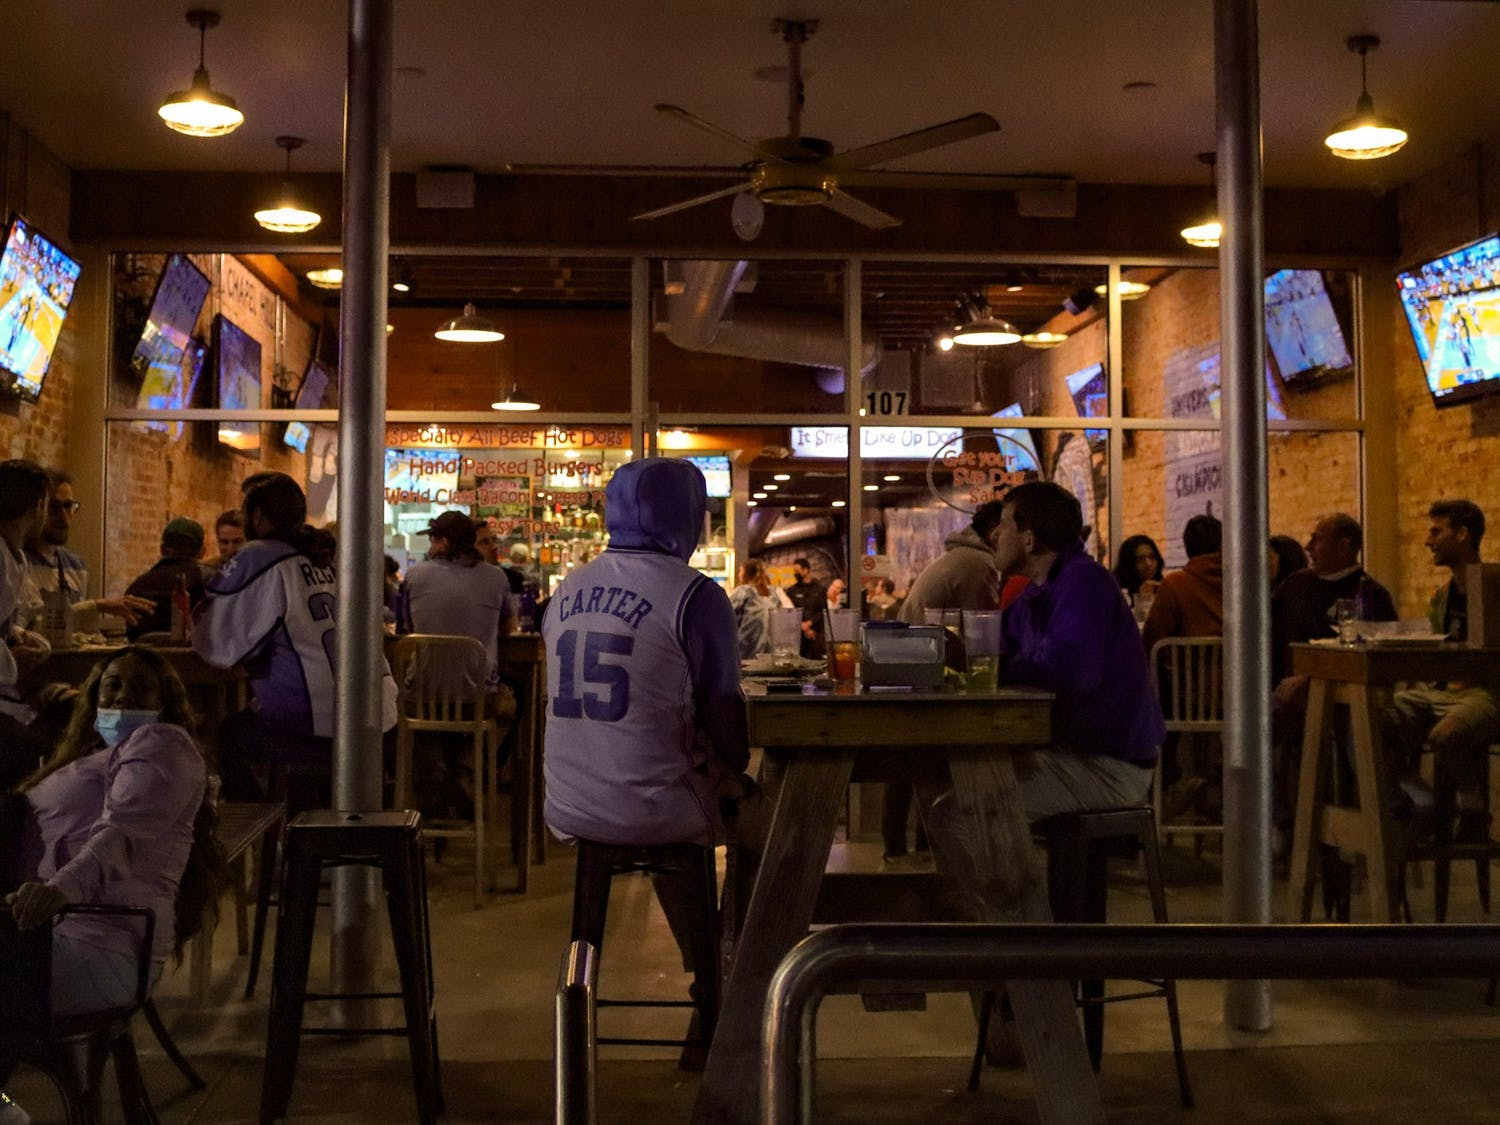 Students gather in Sup Dogs on Franklin Street to watch UNC's 91-73 defeat of Duke basketball on March 6, 2021.